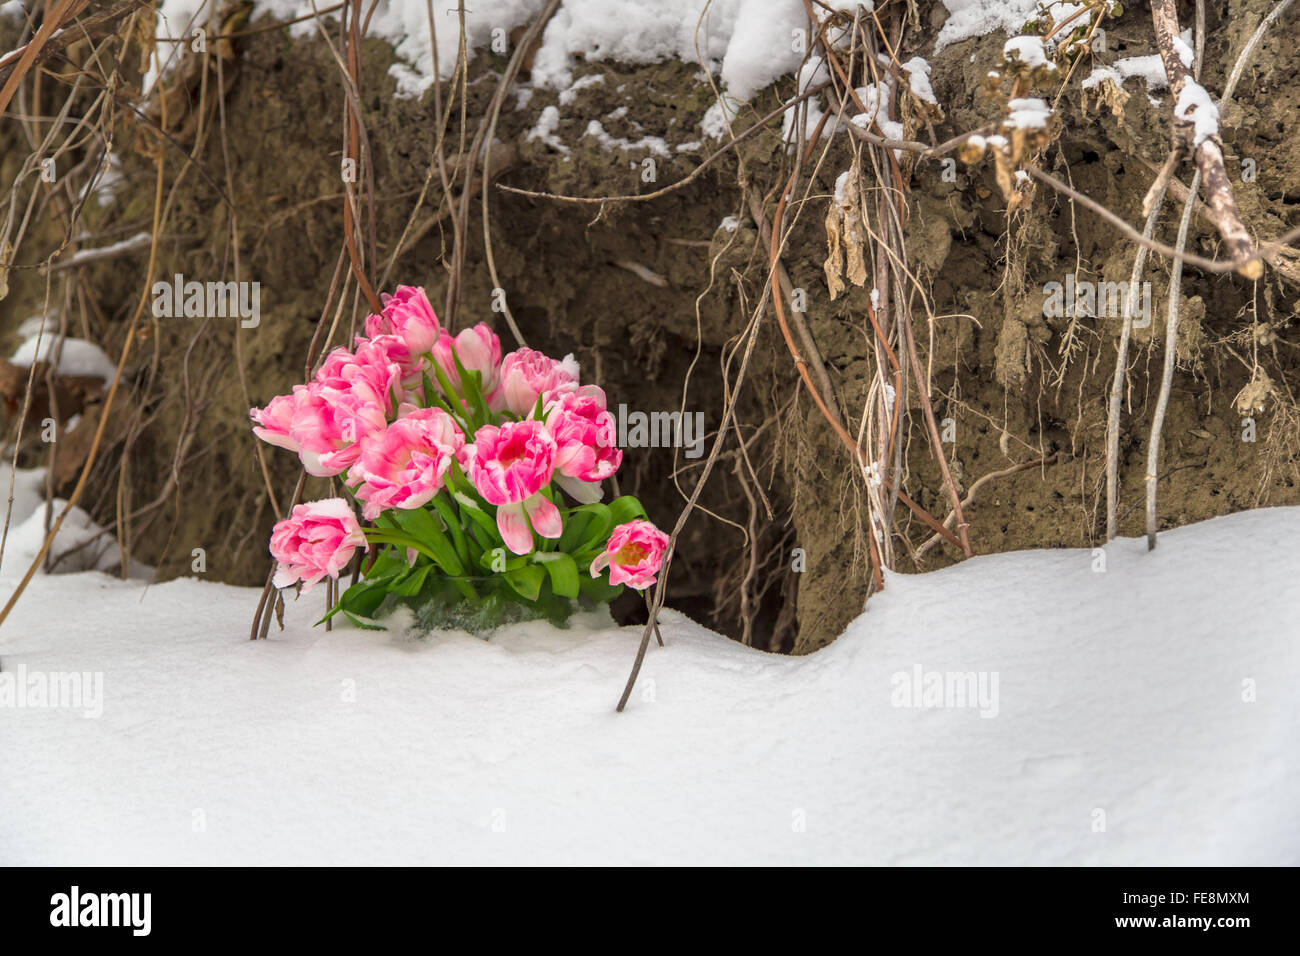 Fresh flowers in a vase standing in the snow on a grunge background - Stock Image